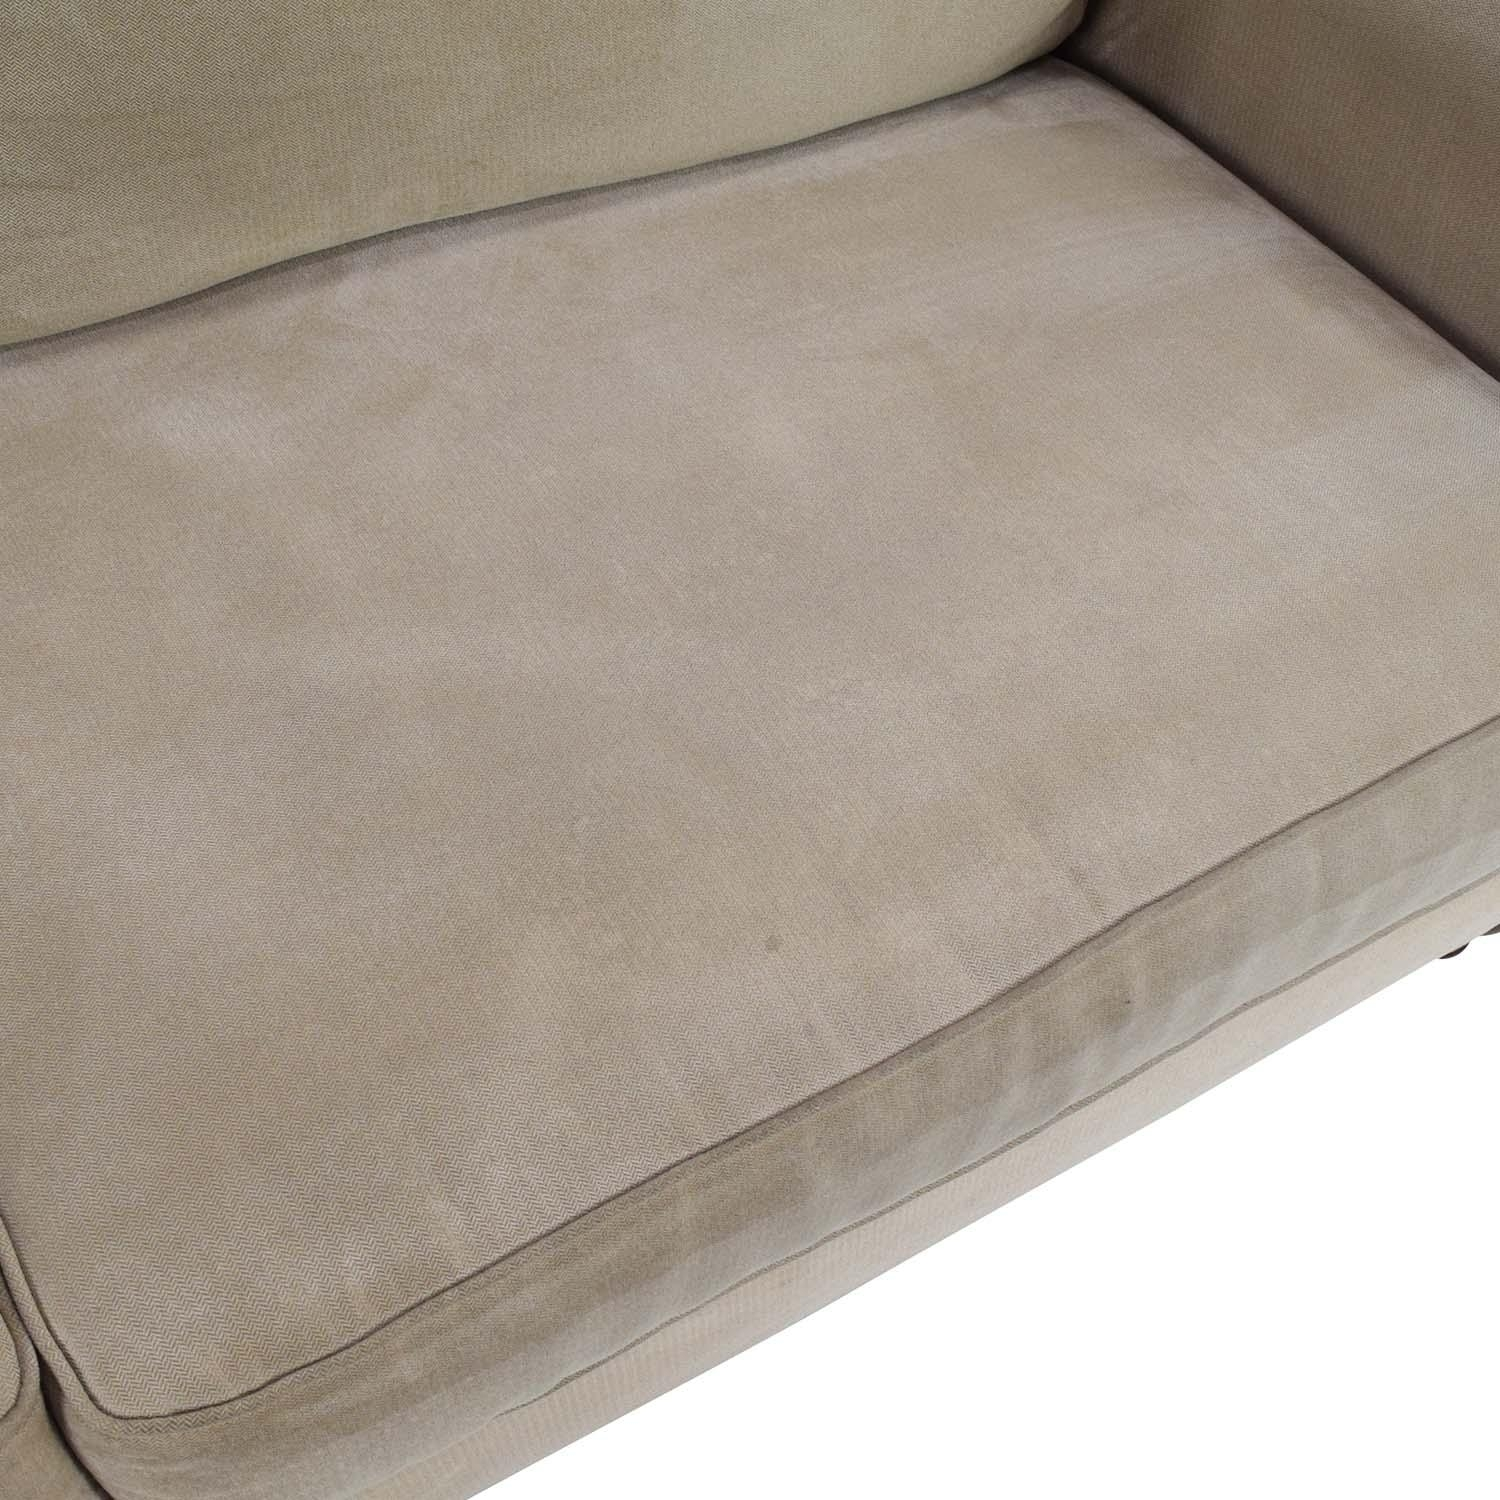 80% Off – Pier 1 Imports Pier 1 Alton Rolled Arm Sofa / Sofas Pertaining To Pier 1 Sofa Beds (Photo 15 of 20)